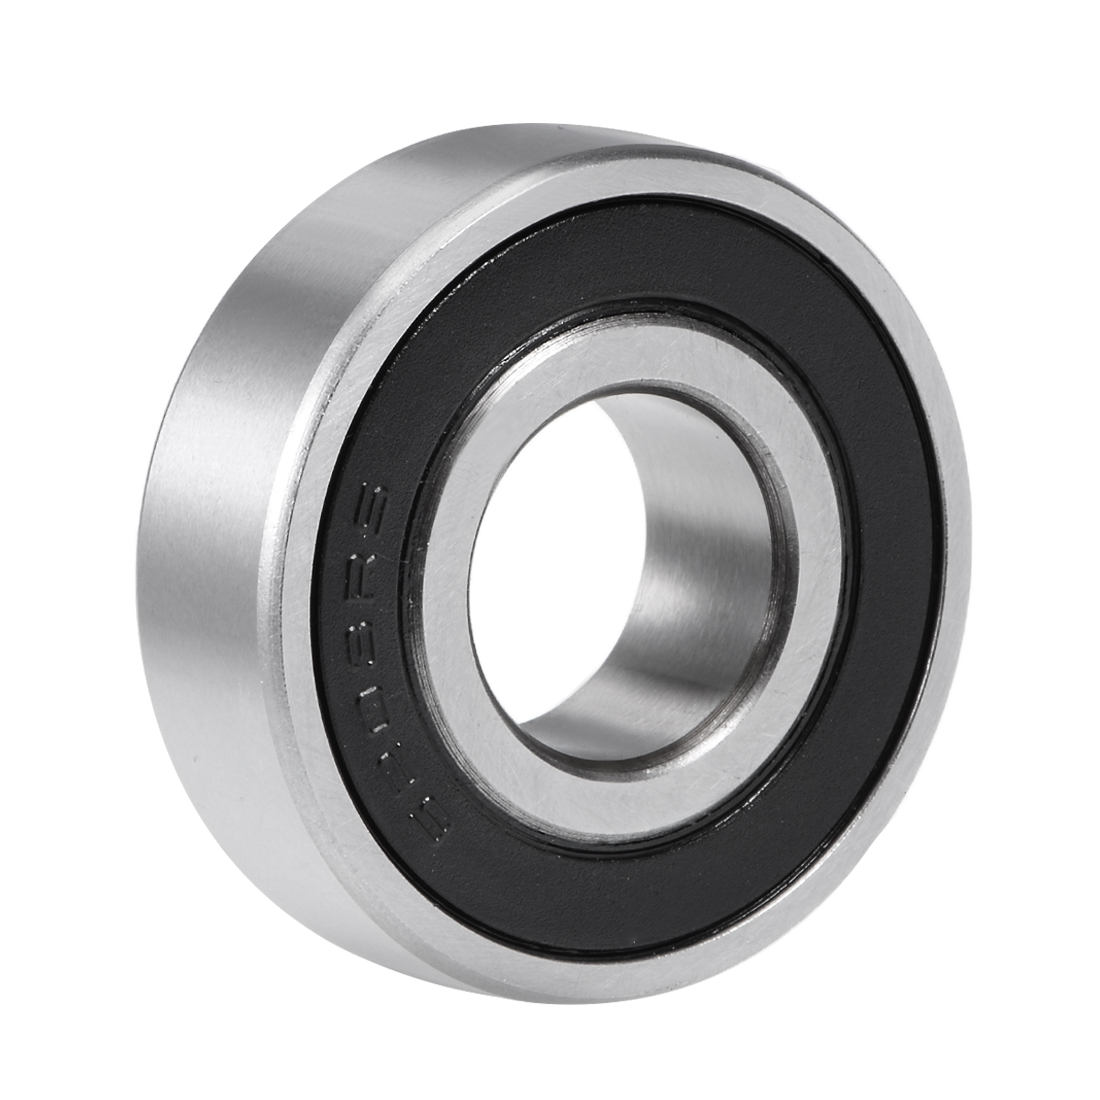 Uxcell 6203-2RS Deep Groove Ball Bearing 17x40x12mm Double Sealed Chrome Steel Bearings (Z2 Lever)